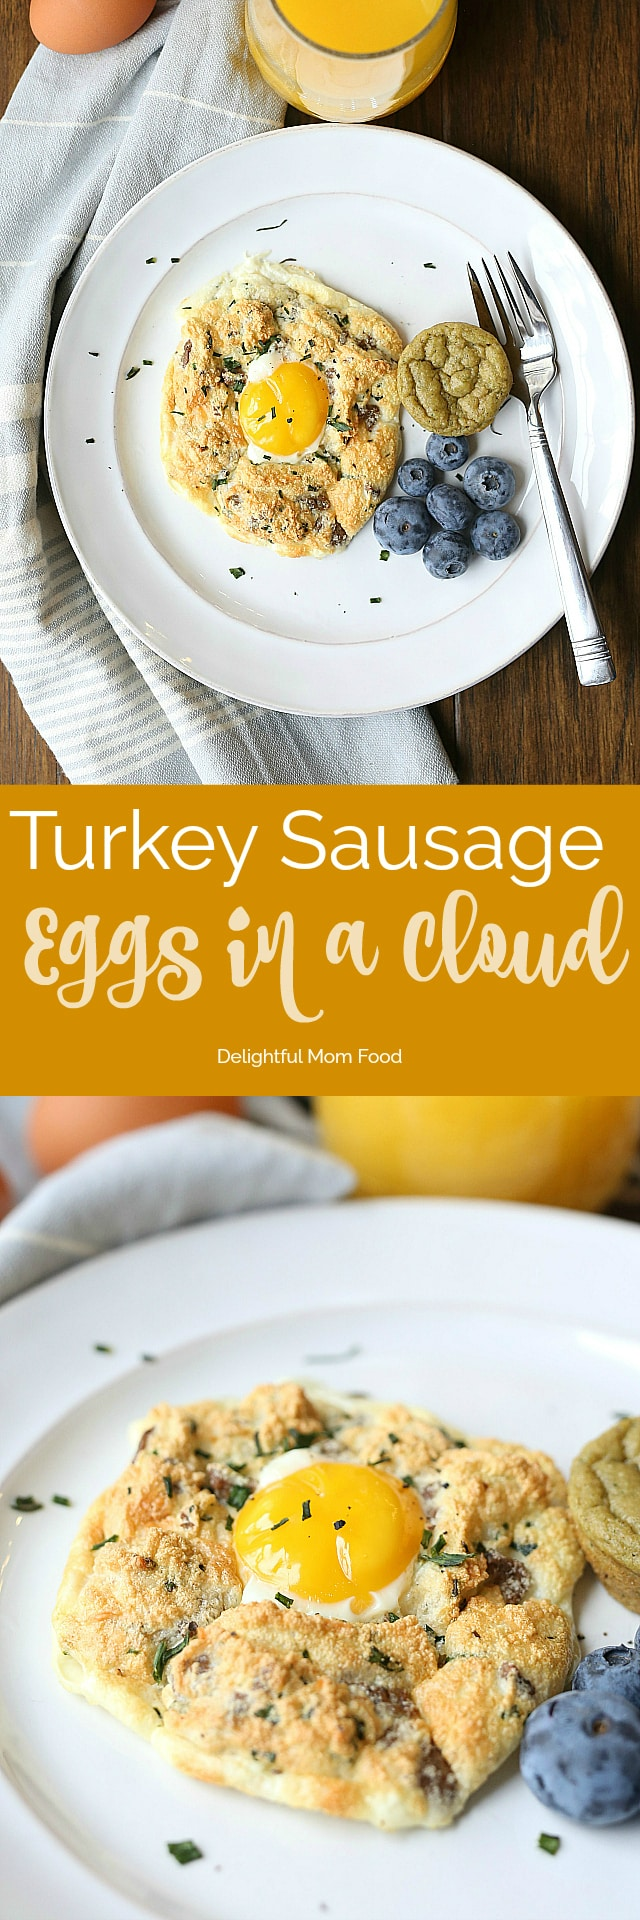 Soft and fluffy cloud eggs tossed with turkey sausage, chives and Parmesan cheese. The perfect delicate and simple breakfast or brunch to revamp a typical egg dish!